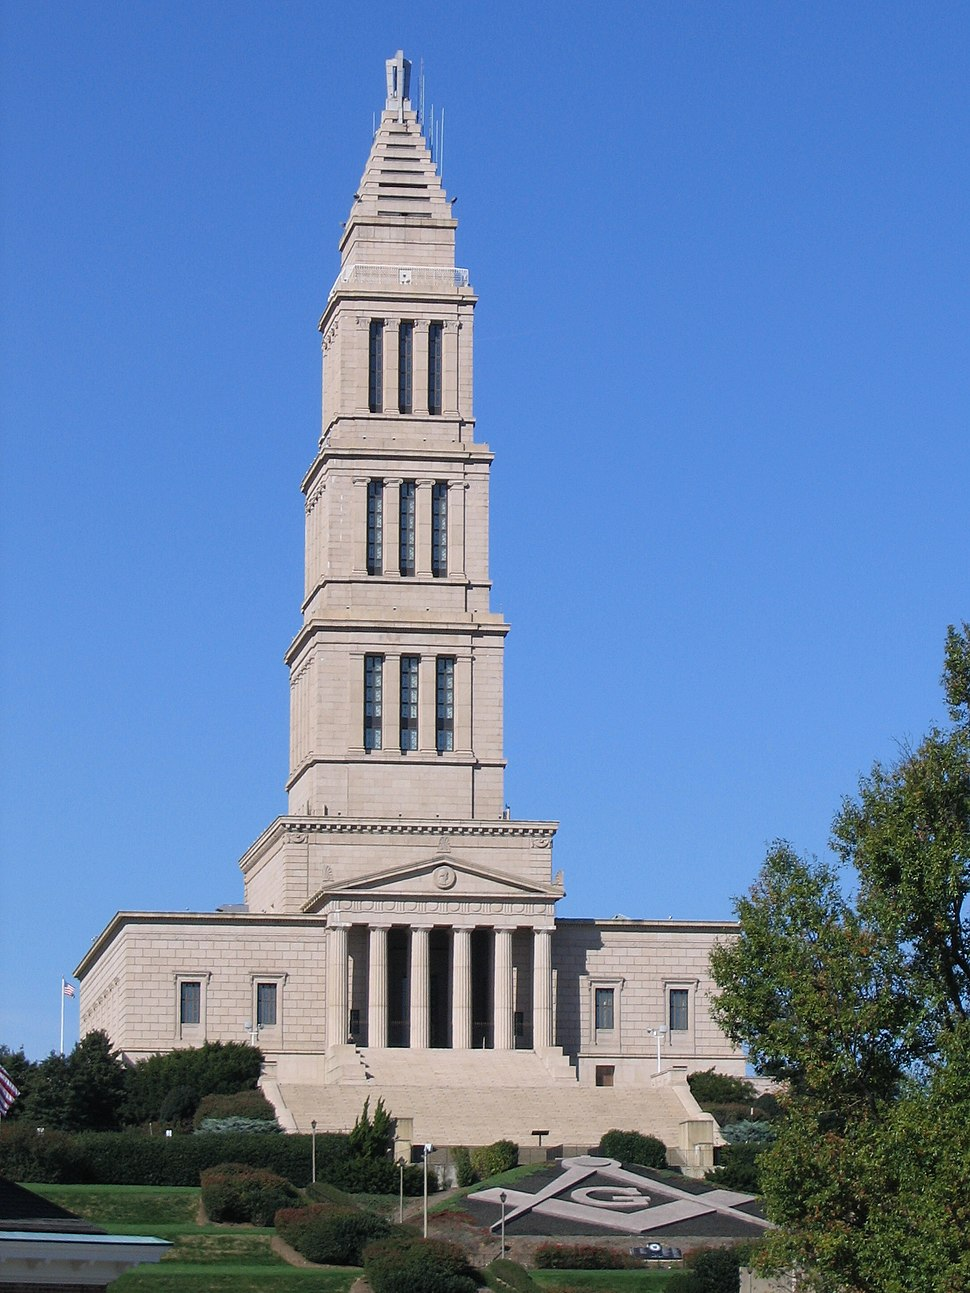 George Washington Masonic National Memorial from King Street Washington Metro station